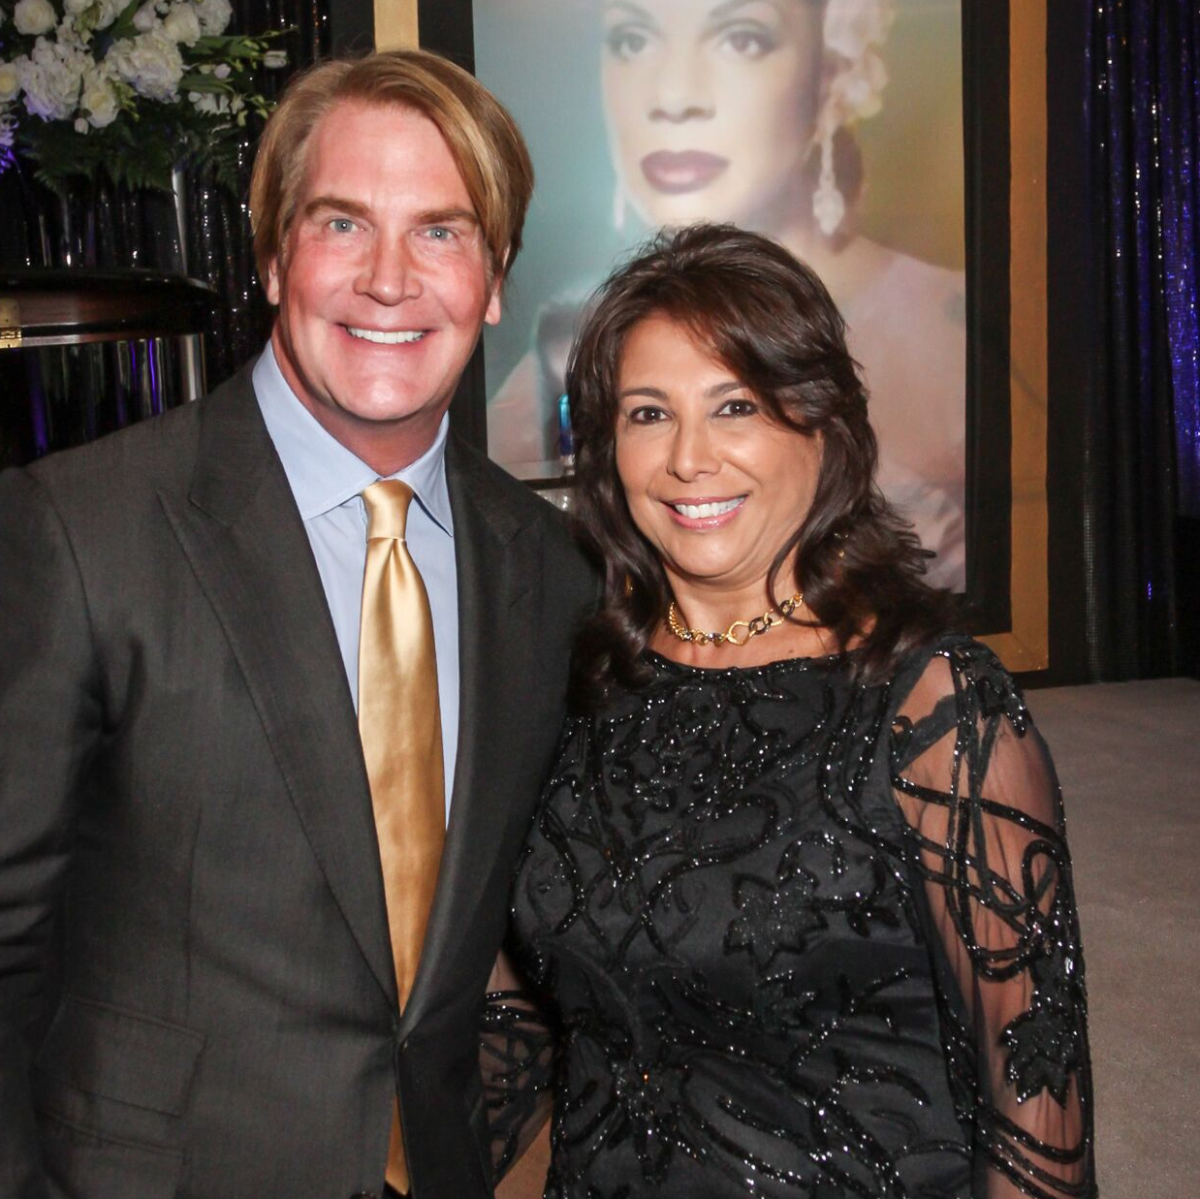 George Lancaster, Regina Garcia at Houston Arts Alliance performance by Audra McDonald